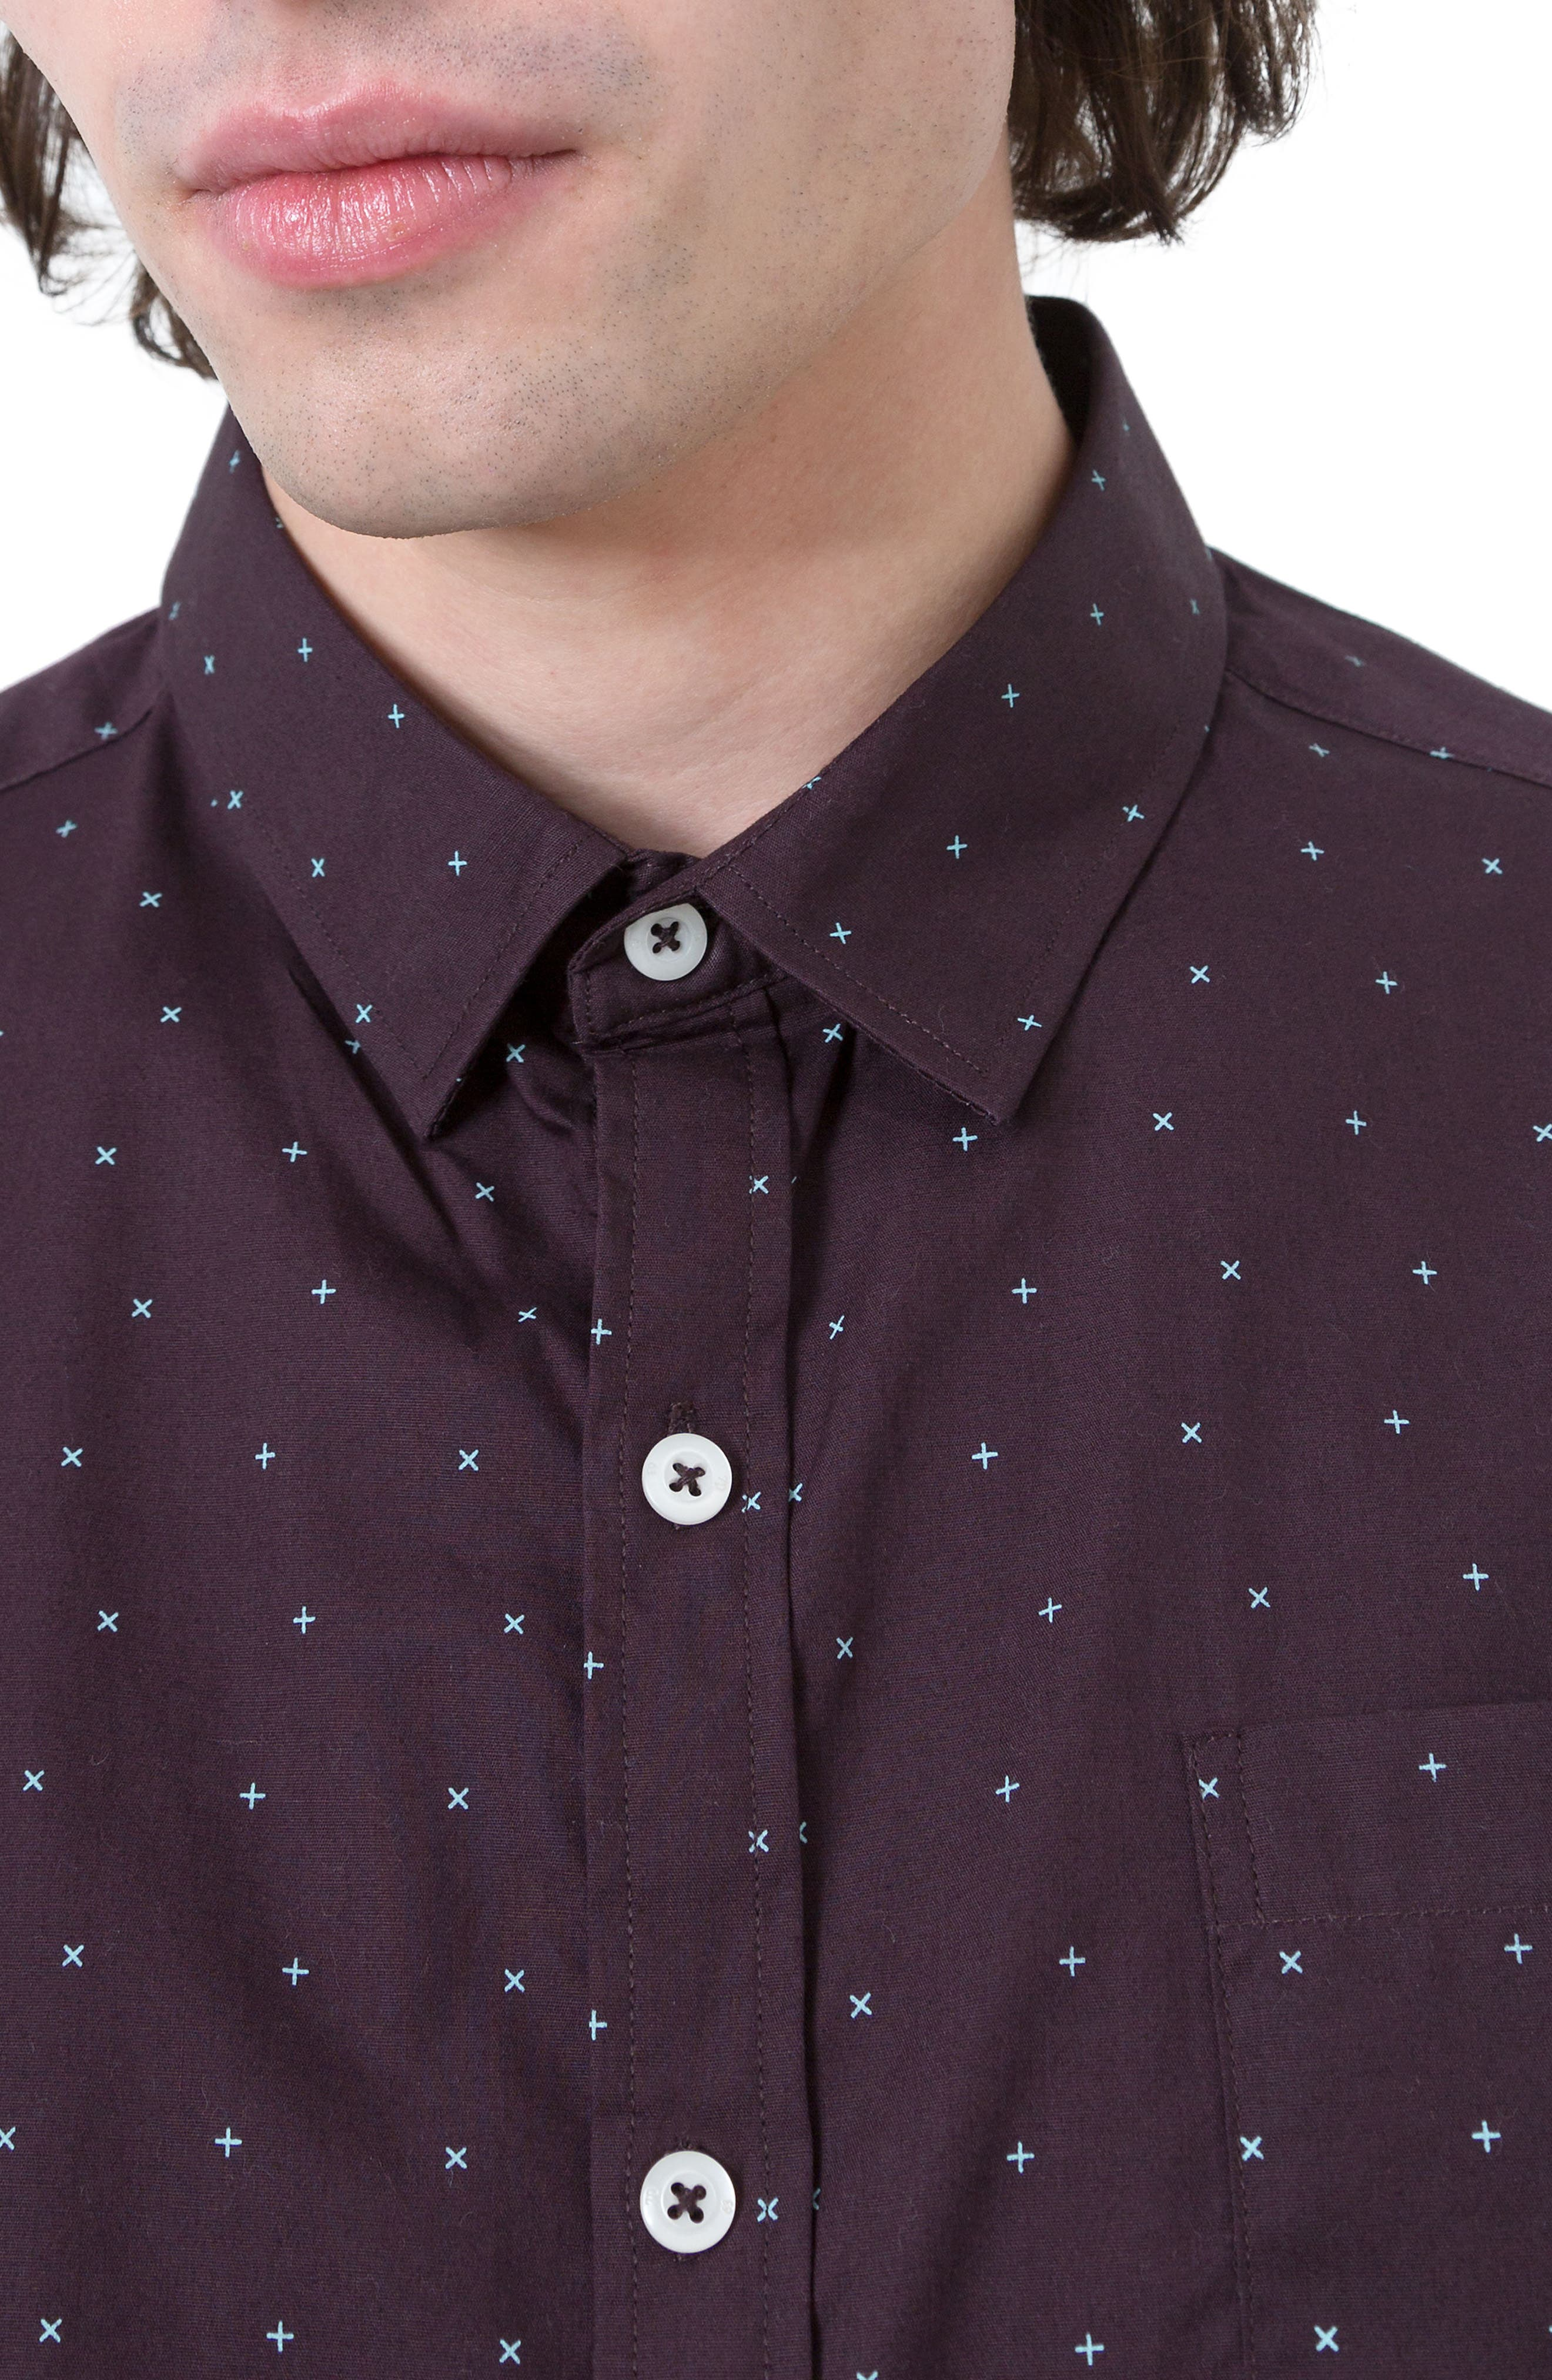 Hit Parade Woven Shirt,                             Alternate thumbnail 4, color,                             930